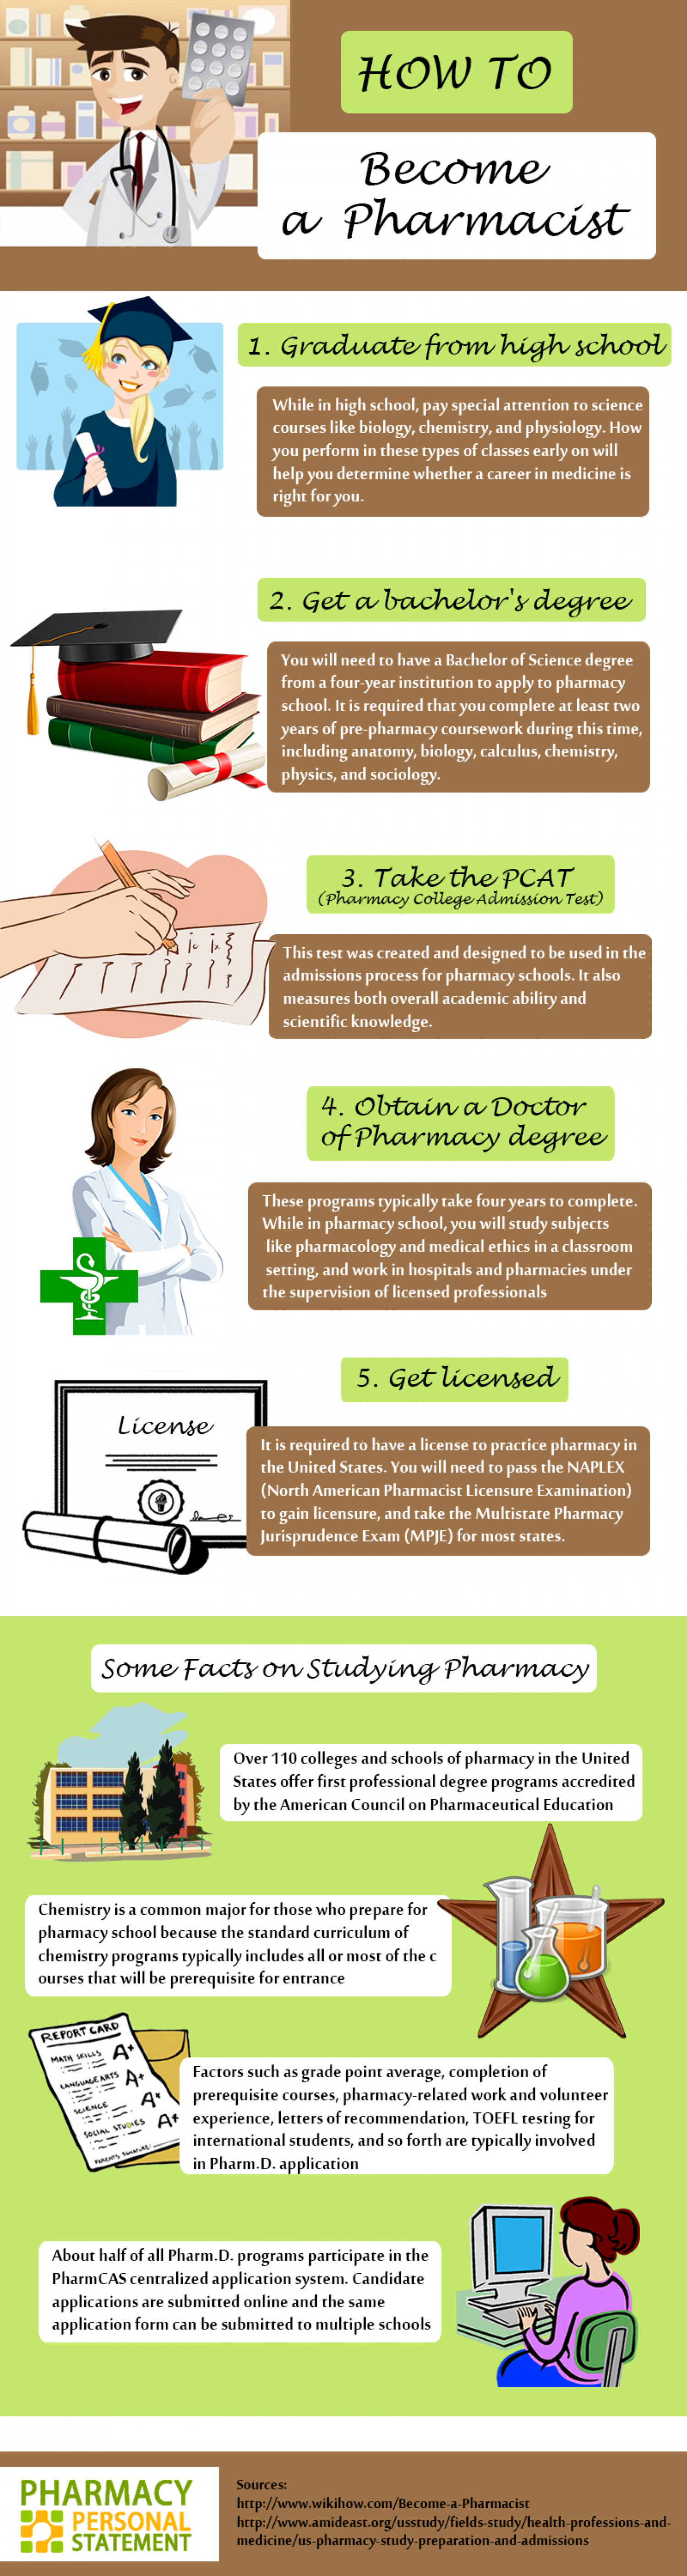 How to Become a Pharmacist Infographic